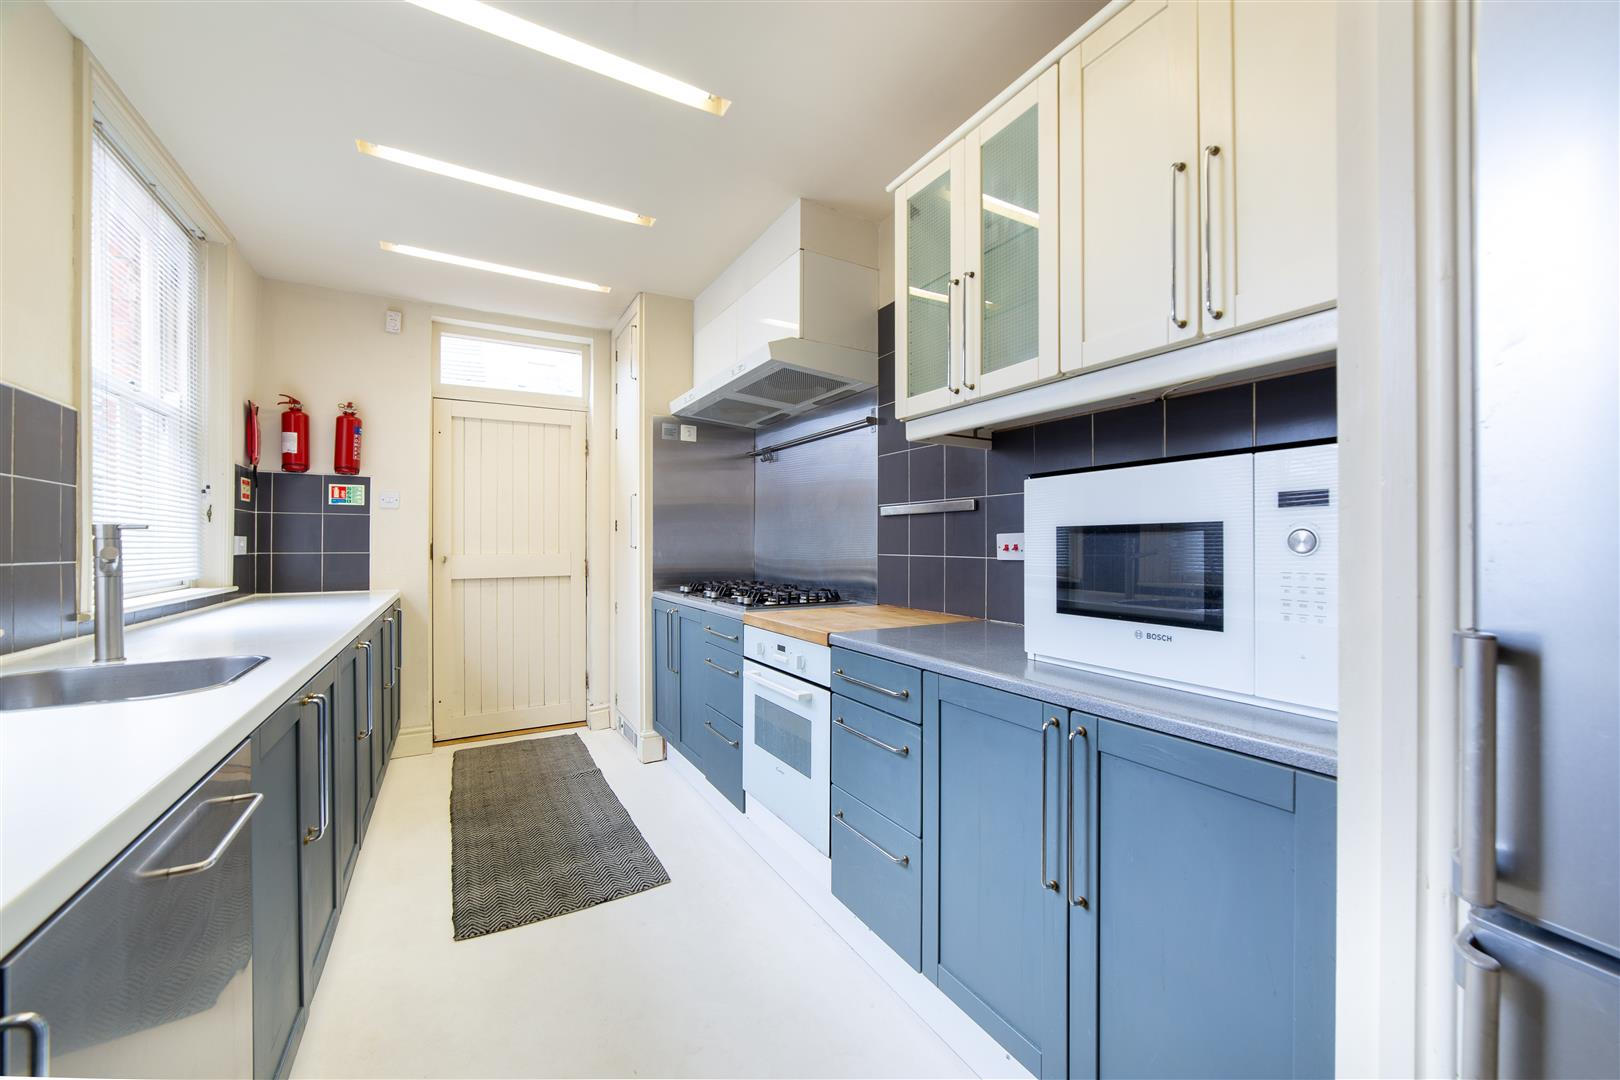 4 bed terraced house to rent in Newcastle Upon Tyne, NE6 5NU  - Property Image 4